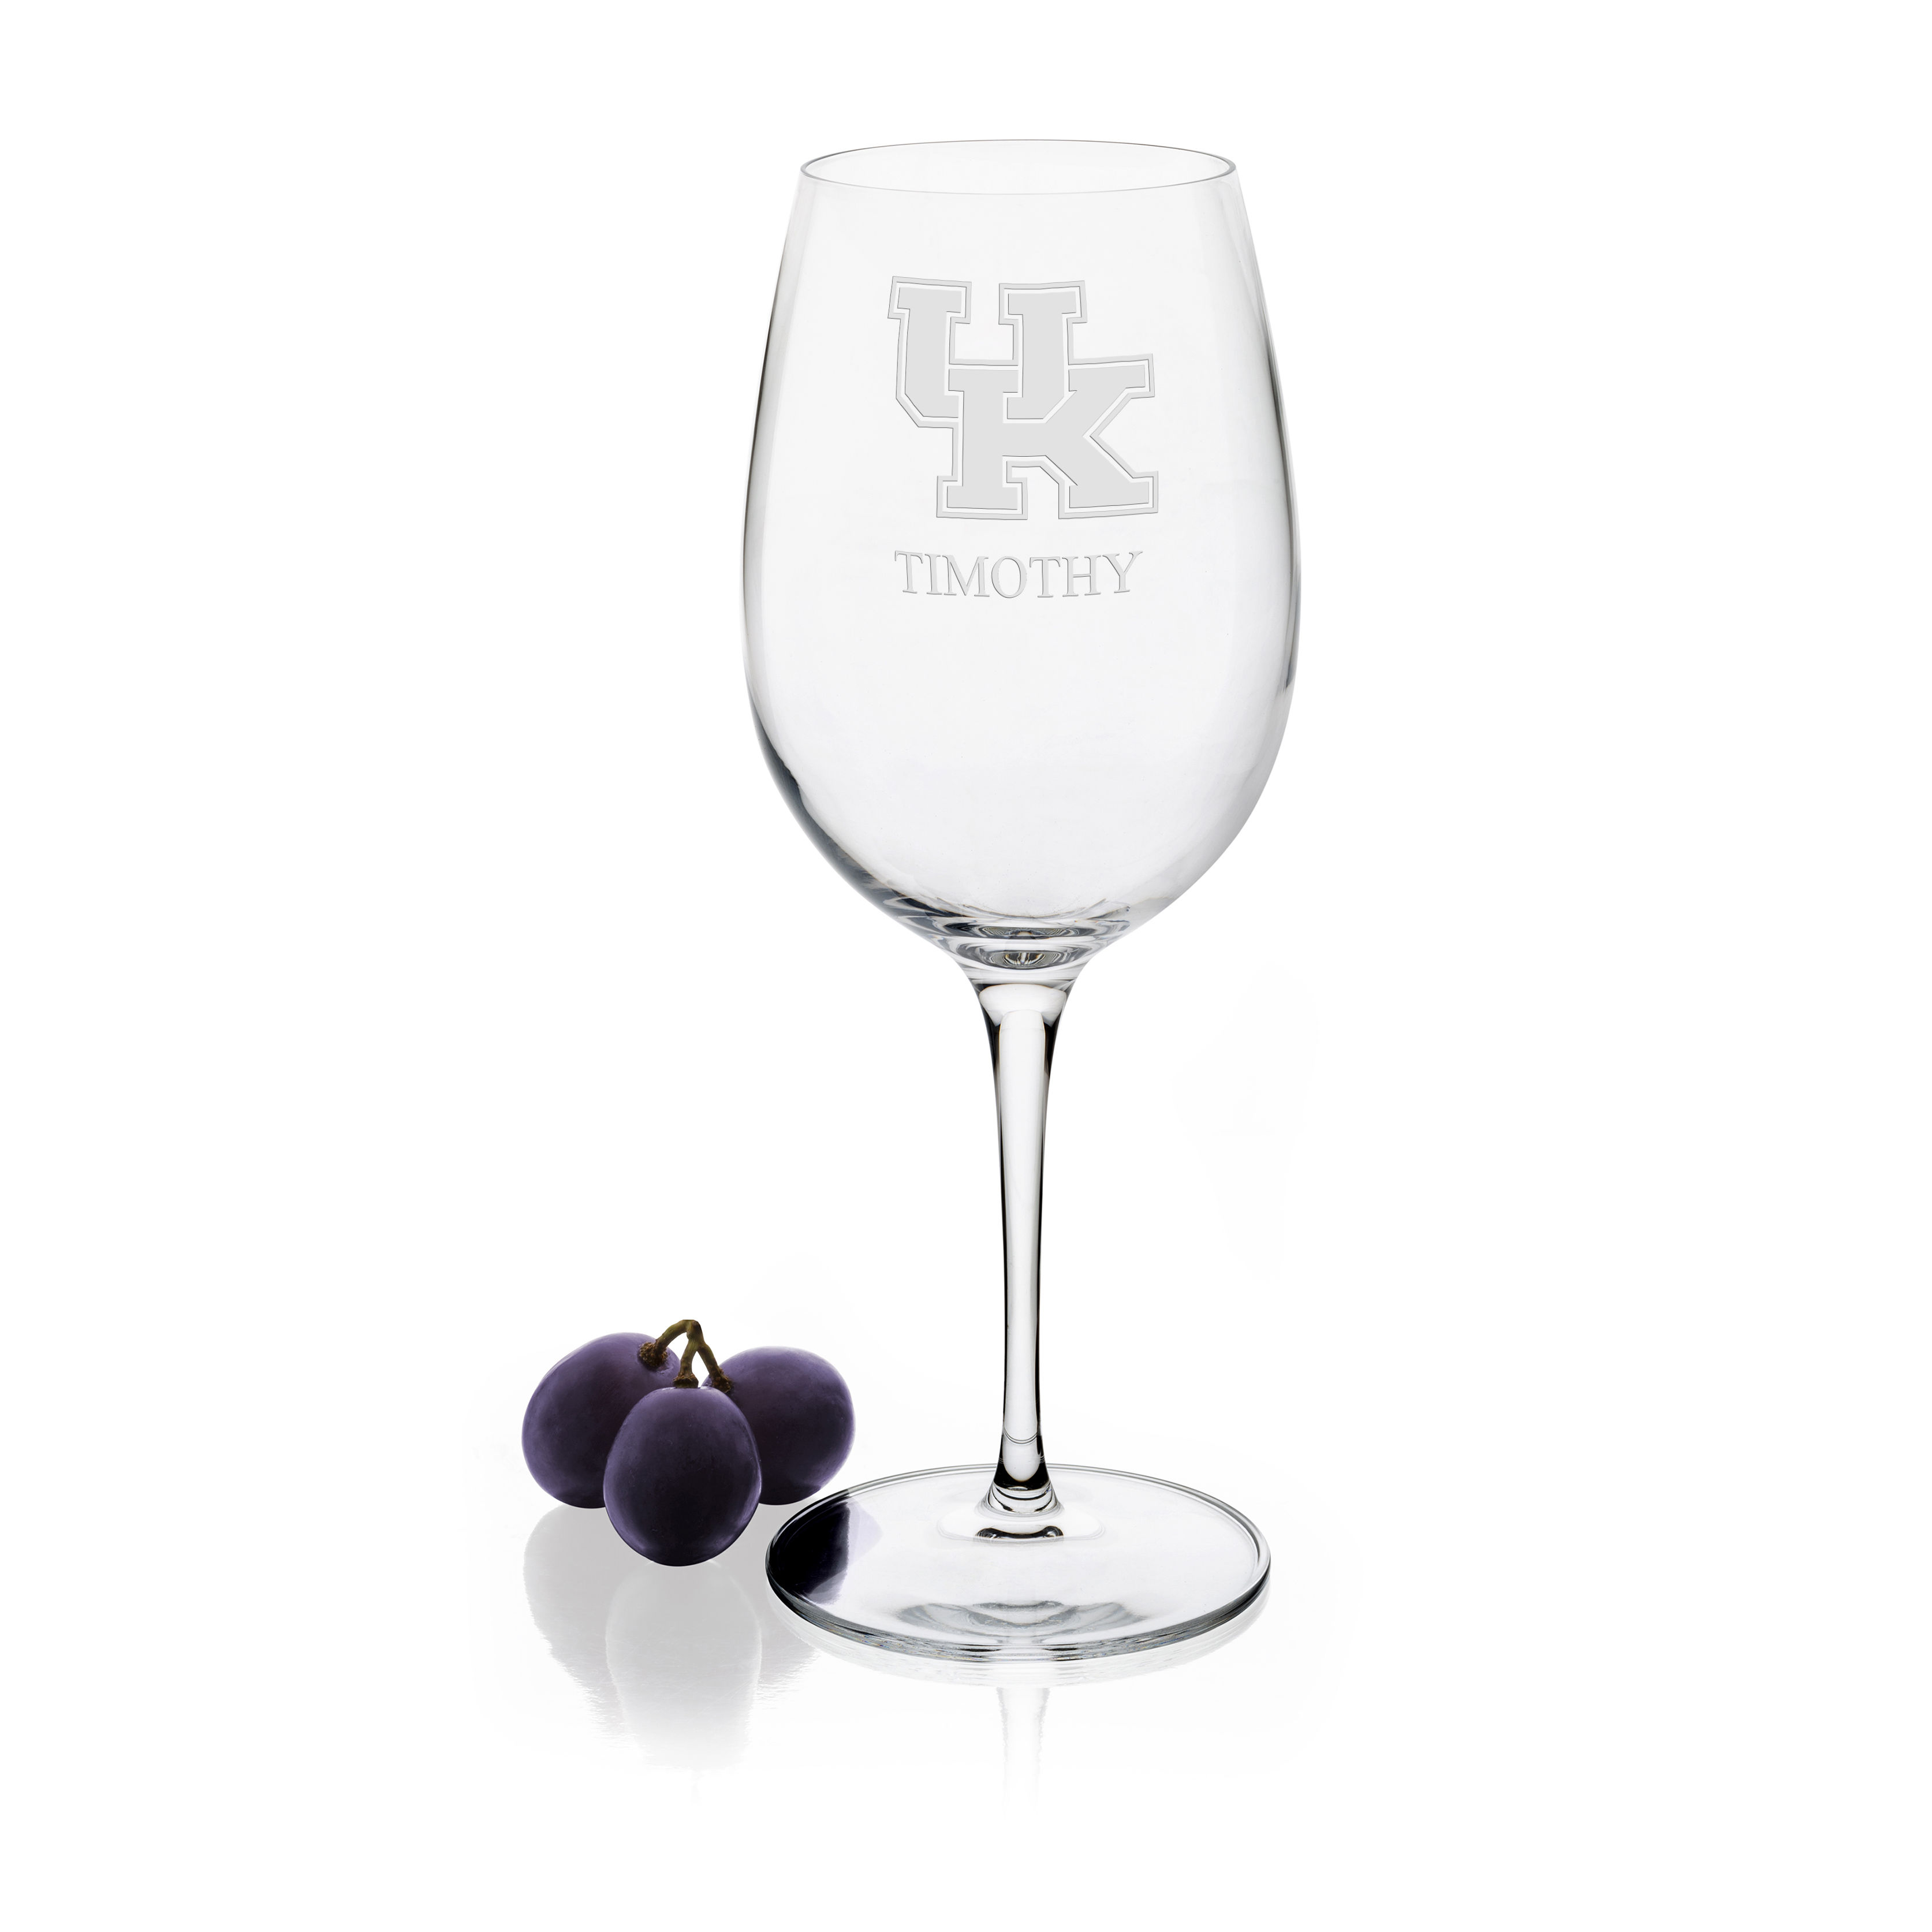 University of Kentucky Red Wine Glasses - Set of 4